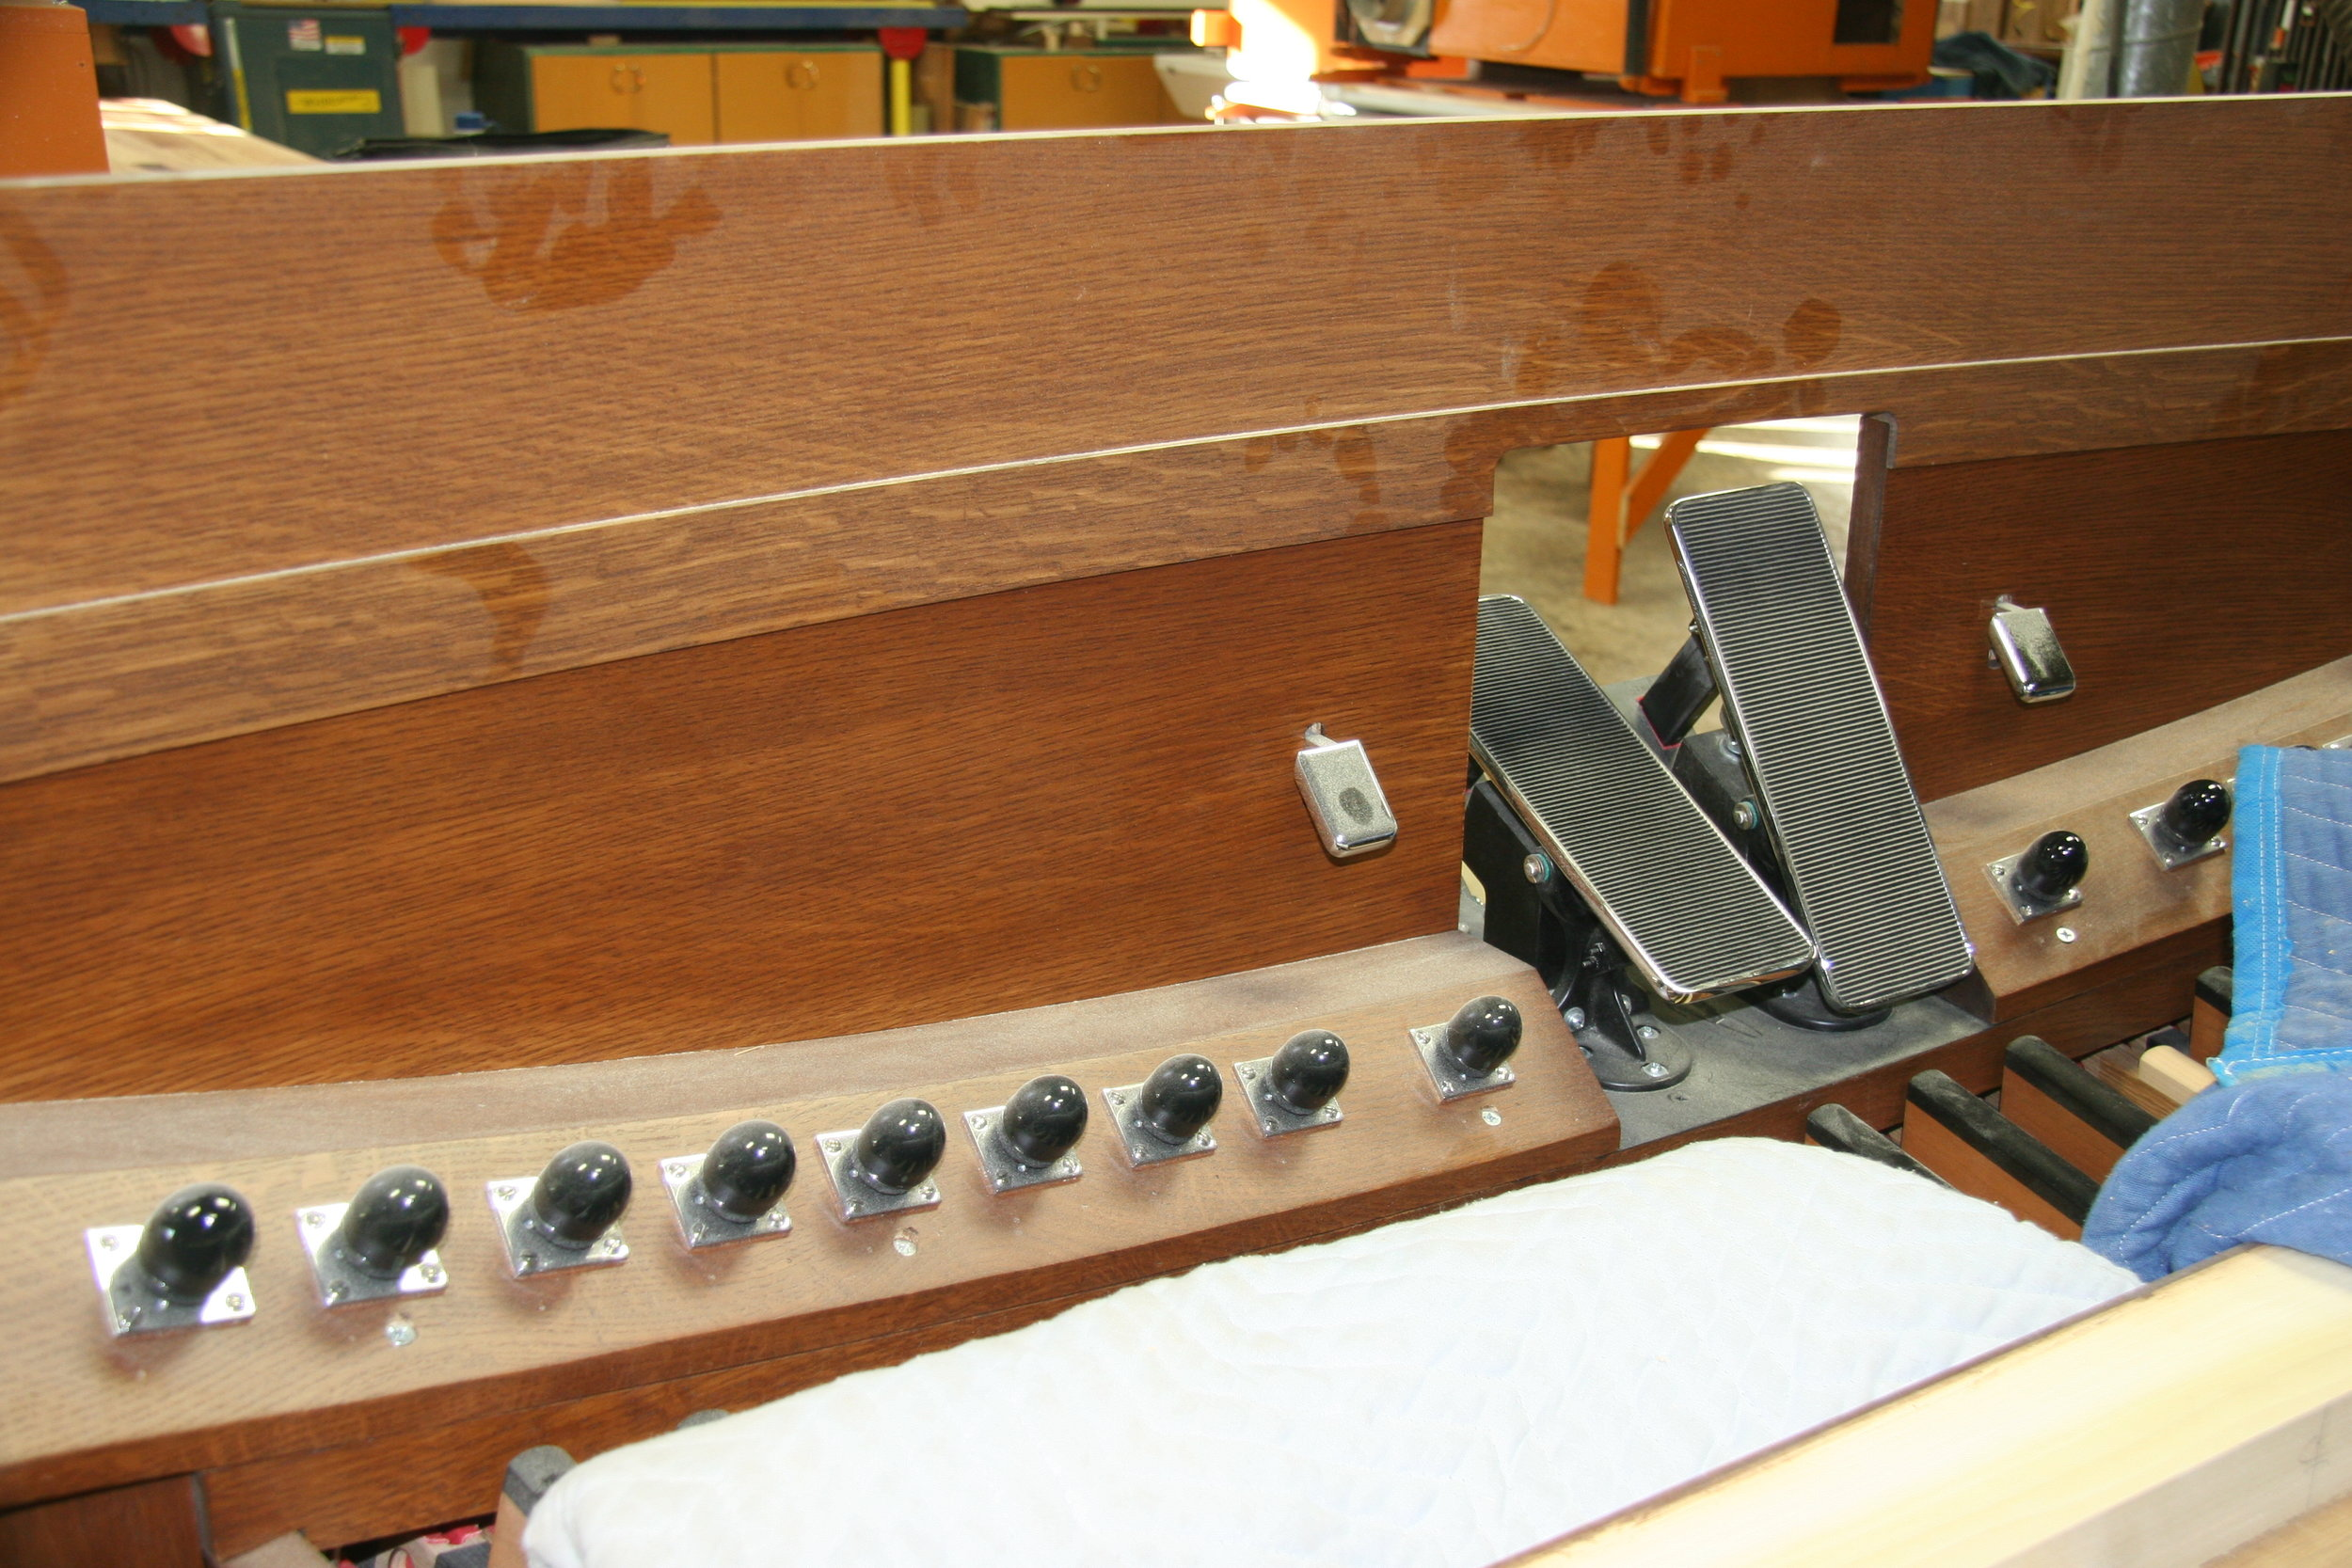 Kick panel with toe studs, toe levers and expresion shoes in place.